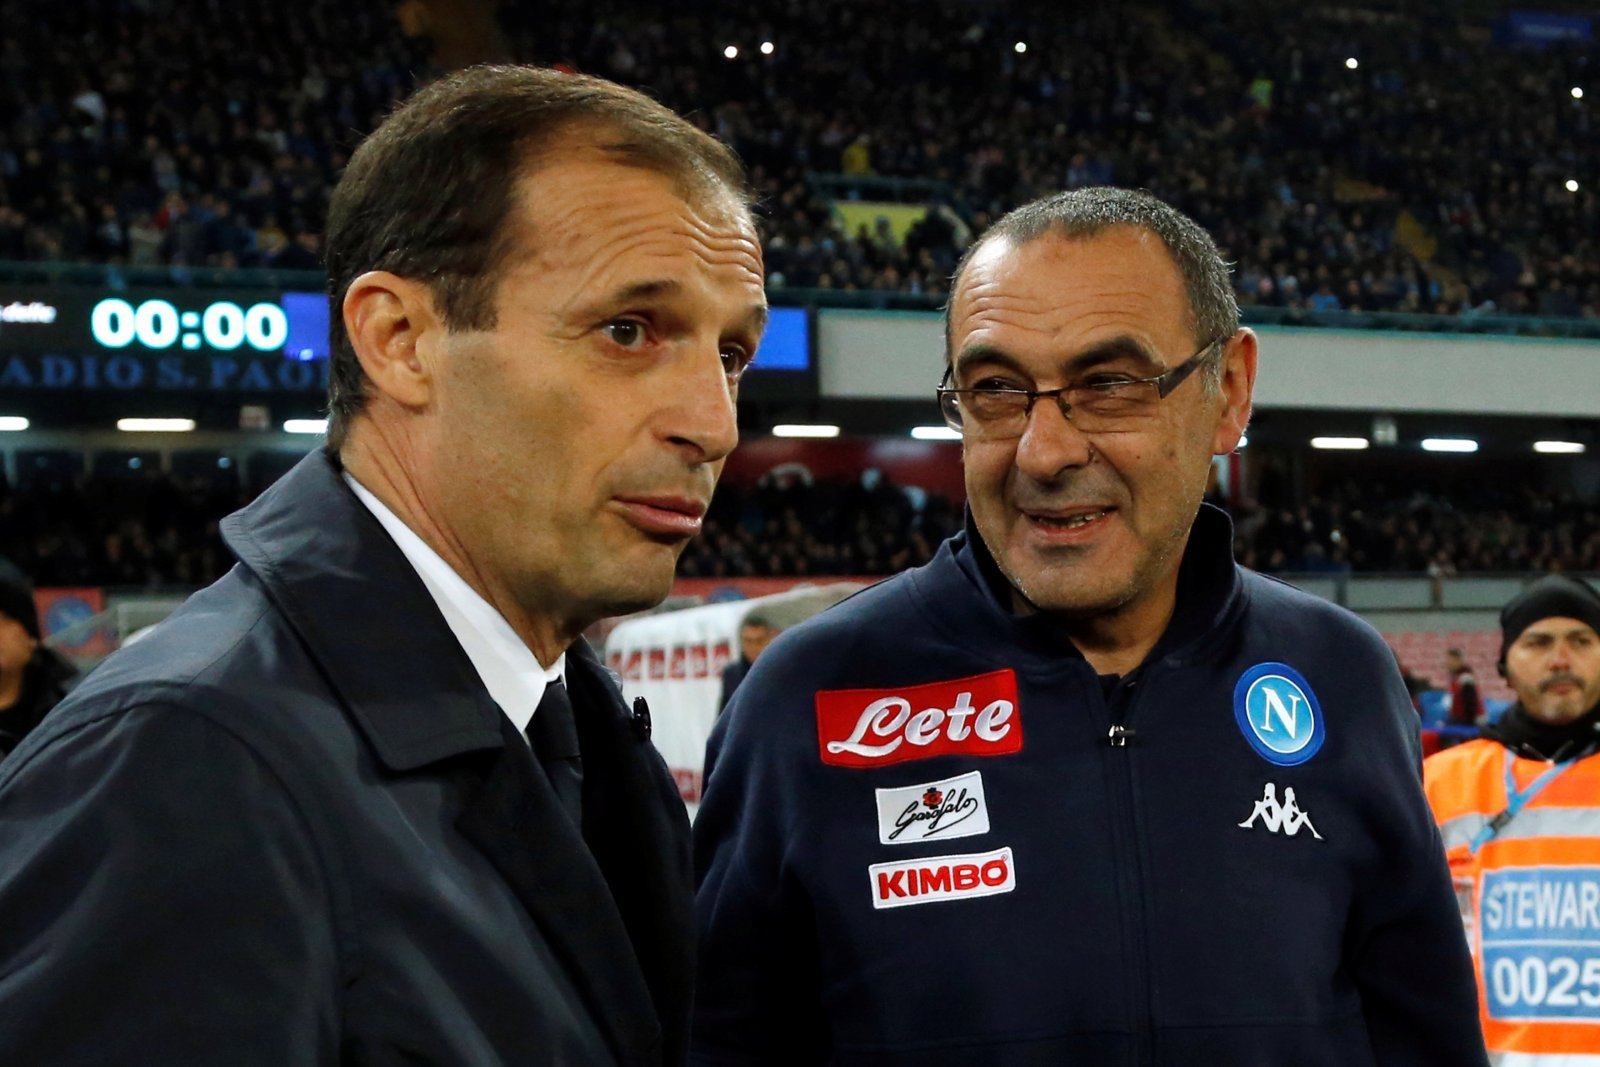 Juventus: Fans criticise Maurizio Sarri after he's seen spotted with Allegri